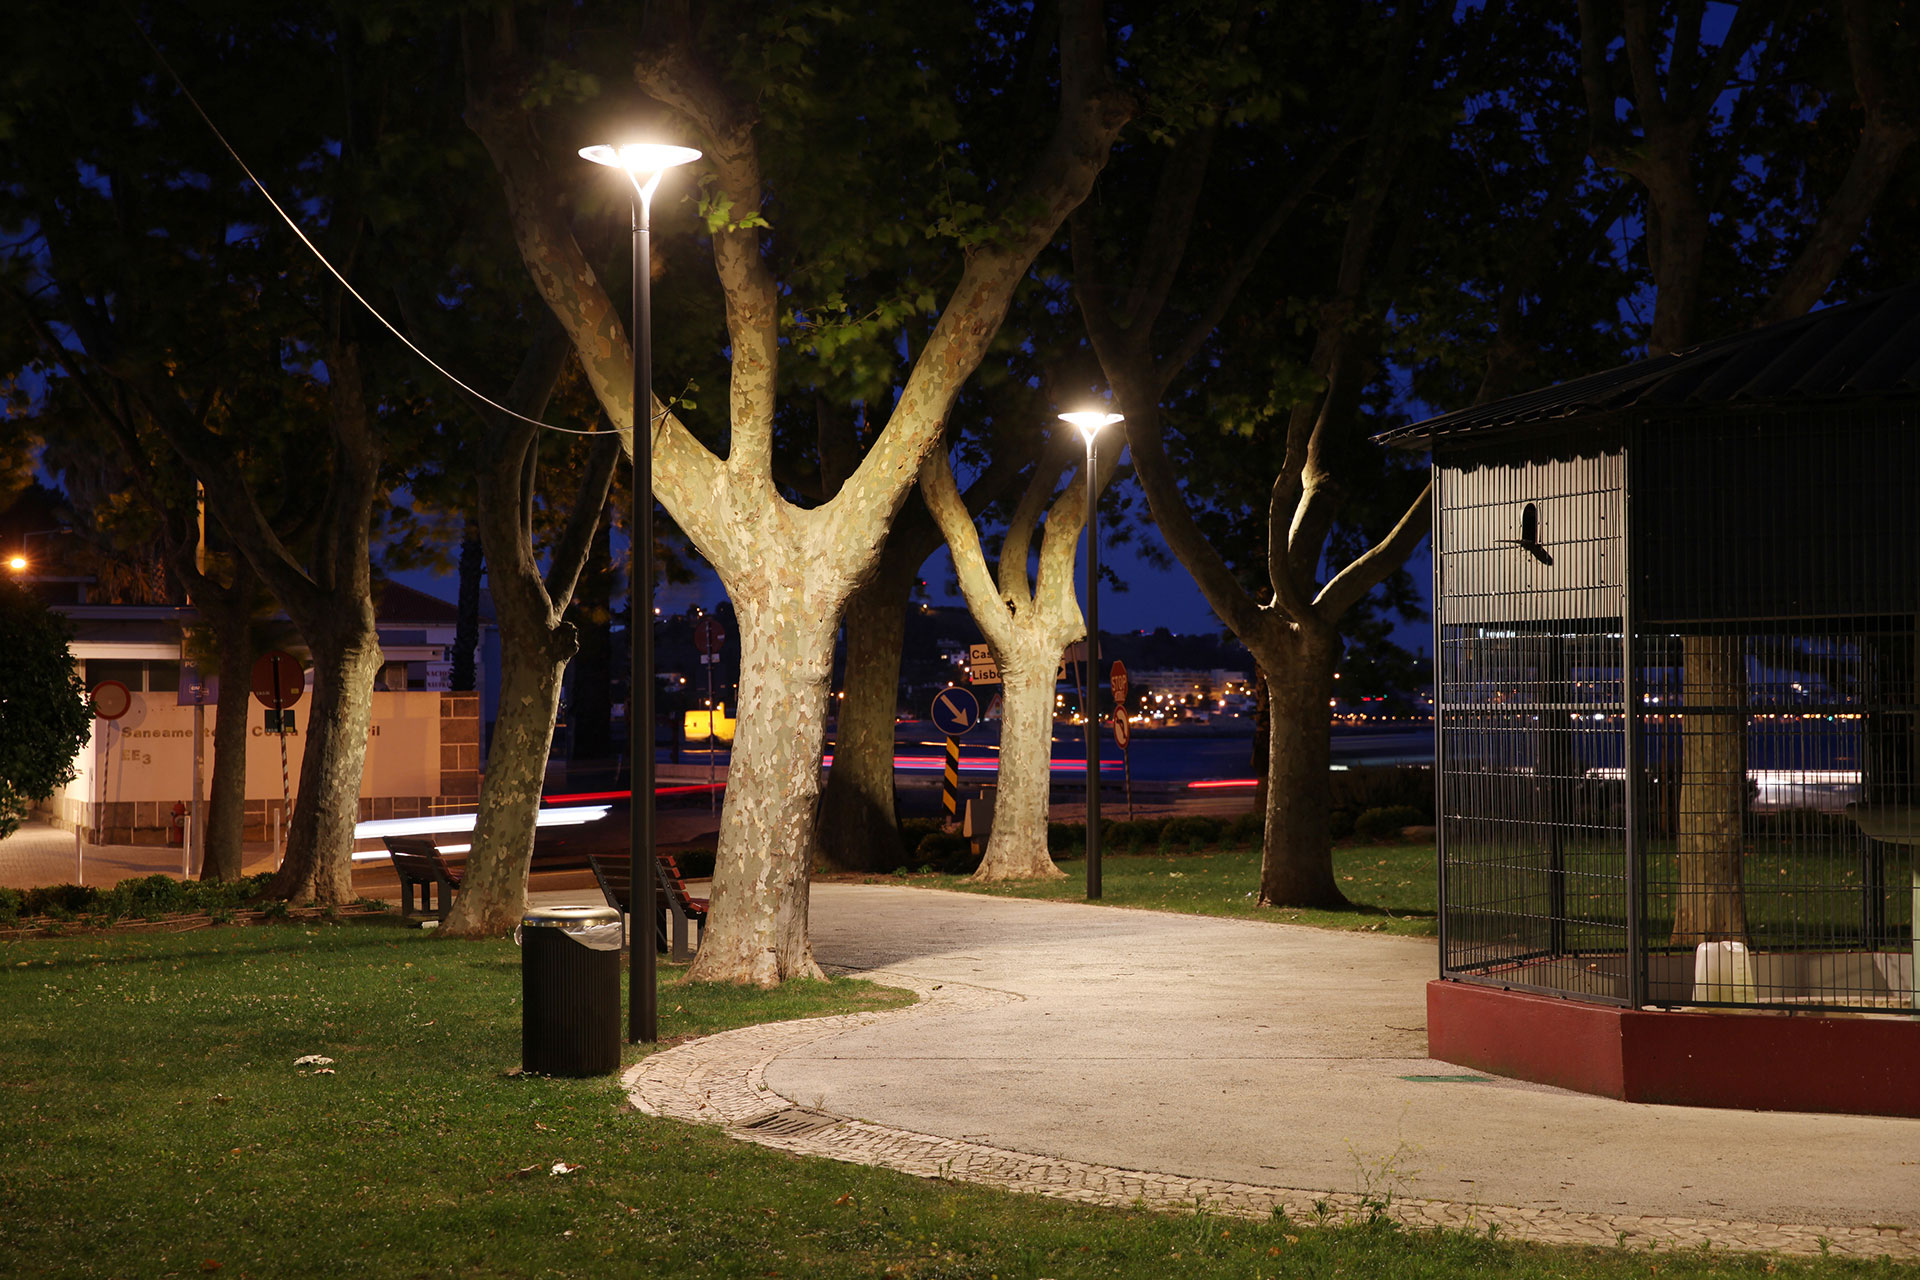 The Oyo urban lighting solution will enable Oeiras city council to cut energy costs for Paco de Arcos park by 55%